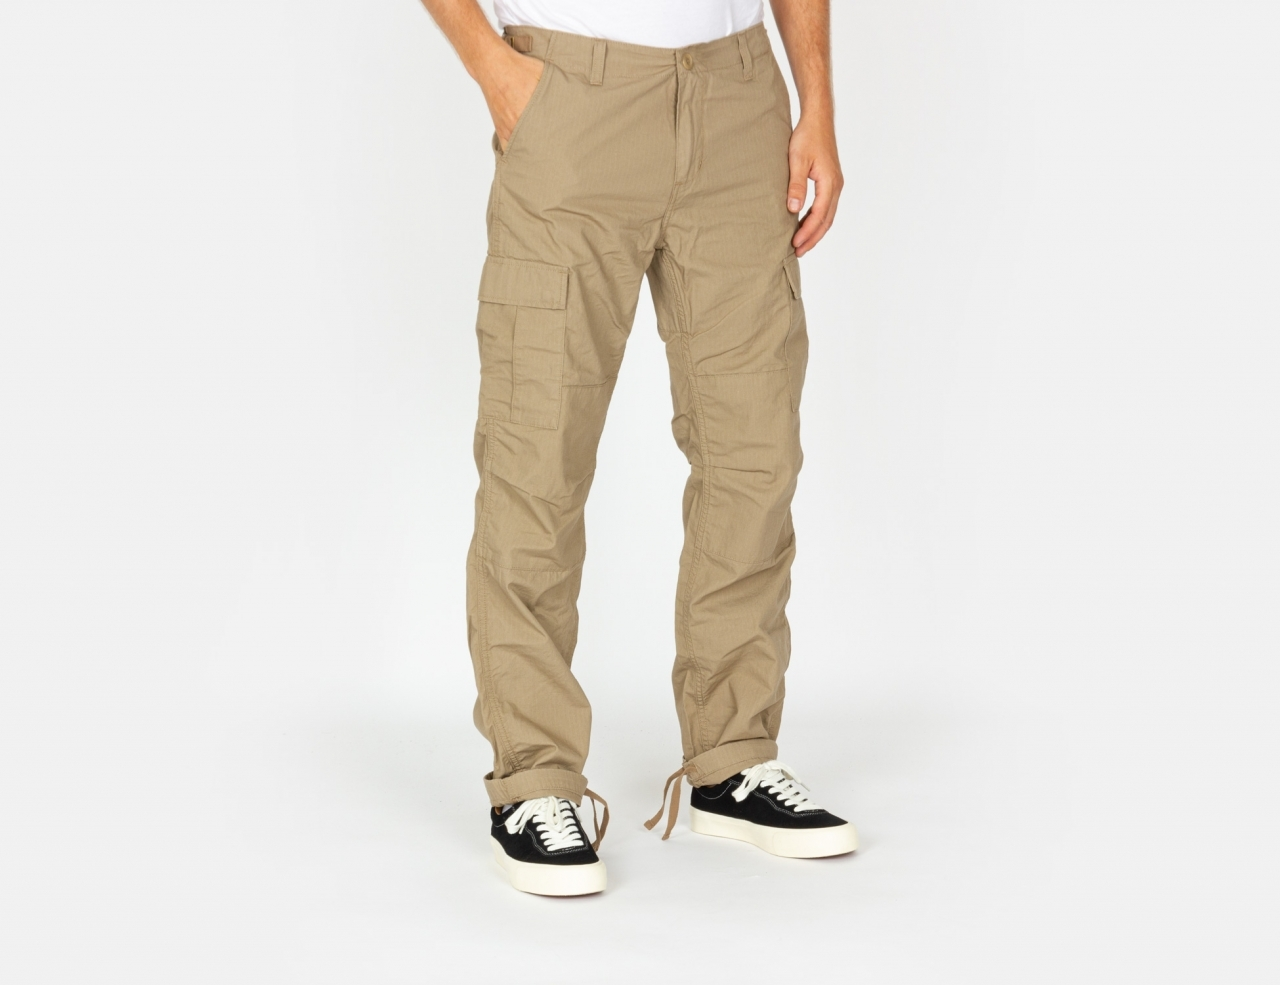 Carhartt WIP Aviation Cargo Pant - Leather